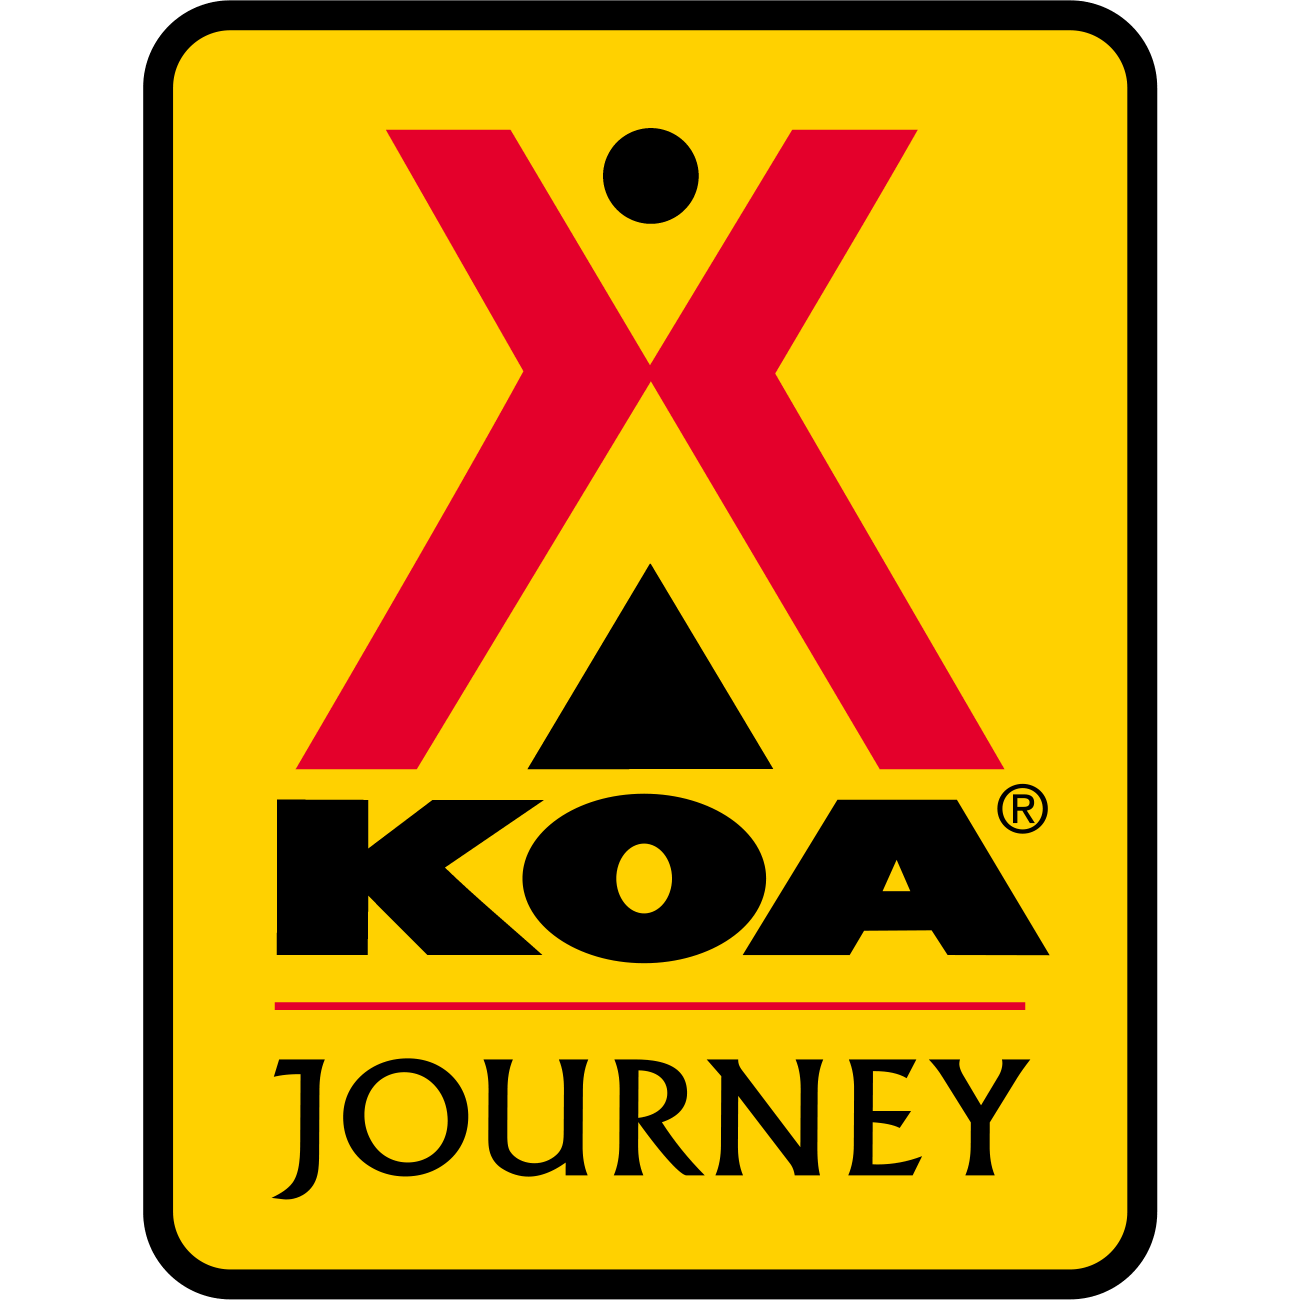 Kingman KOA Journey